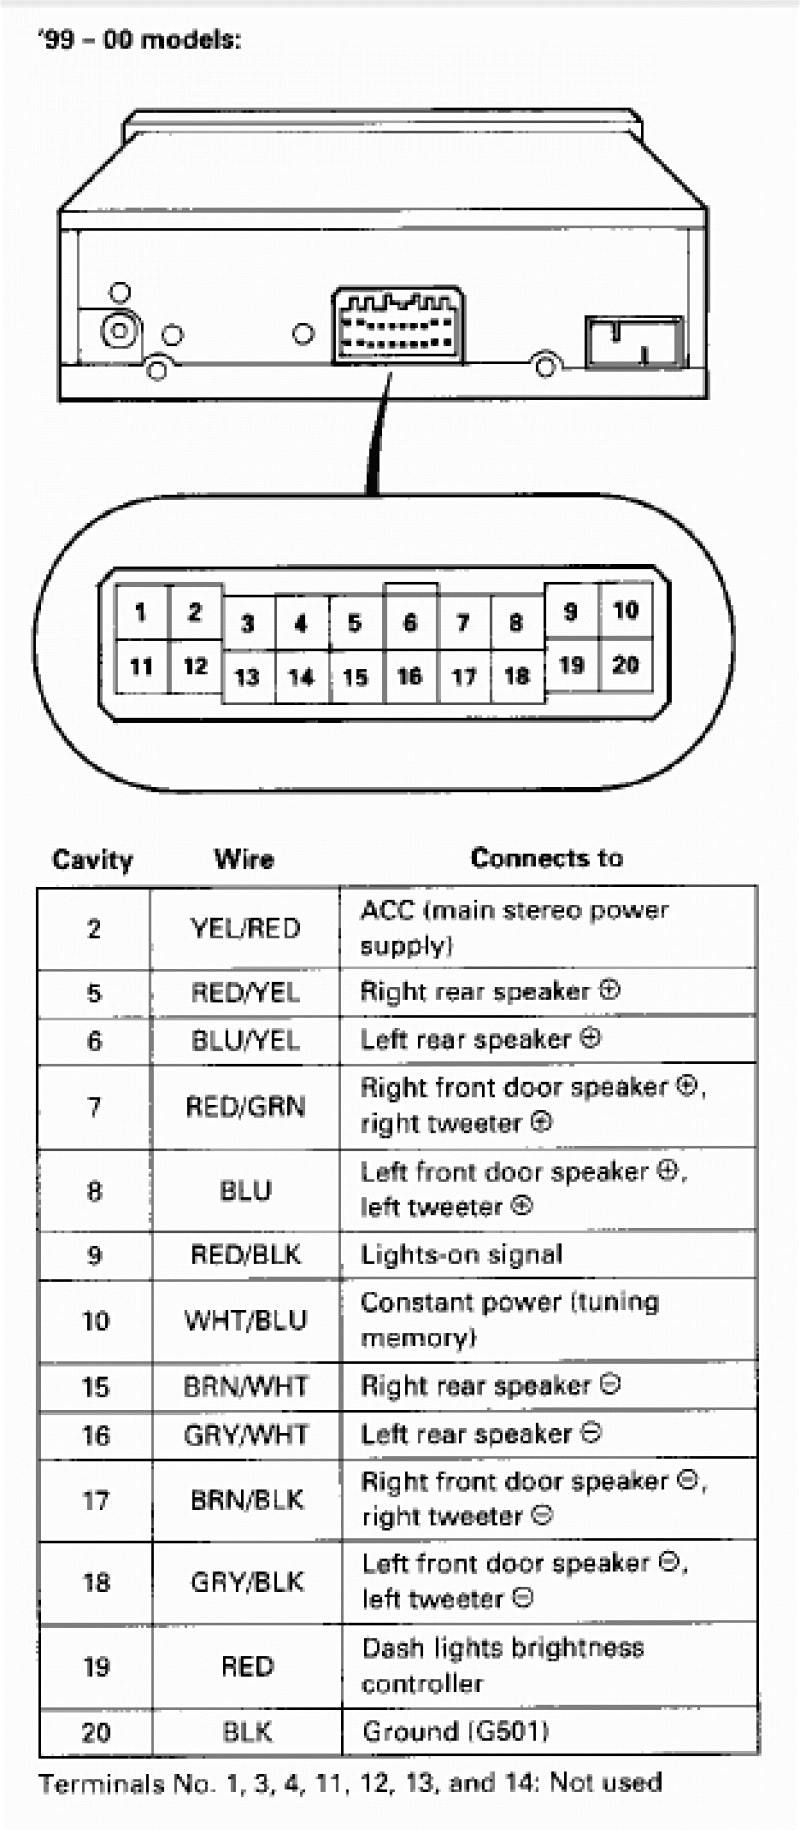 2000 honda civic radio wiring diagram Download-1995 honda civic radio wiring diagram sevimliler and 14-n